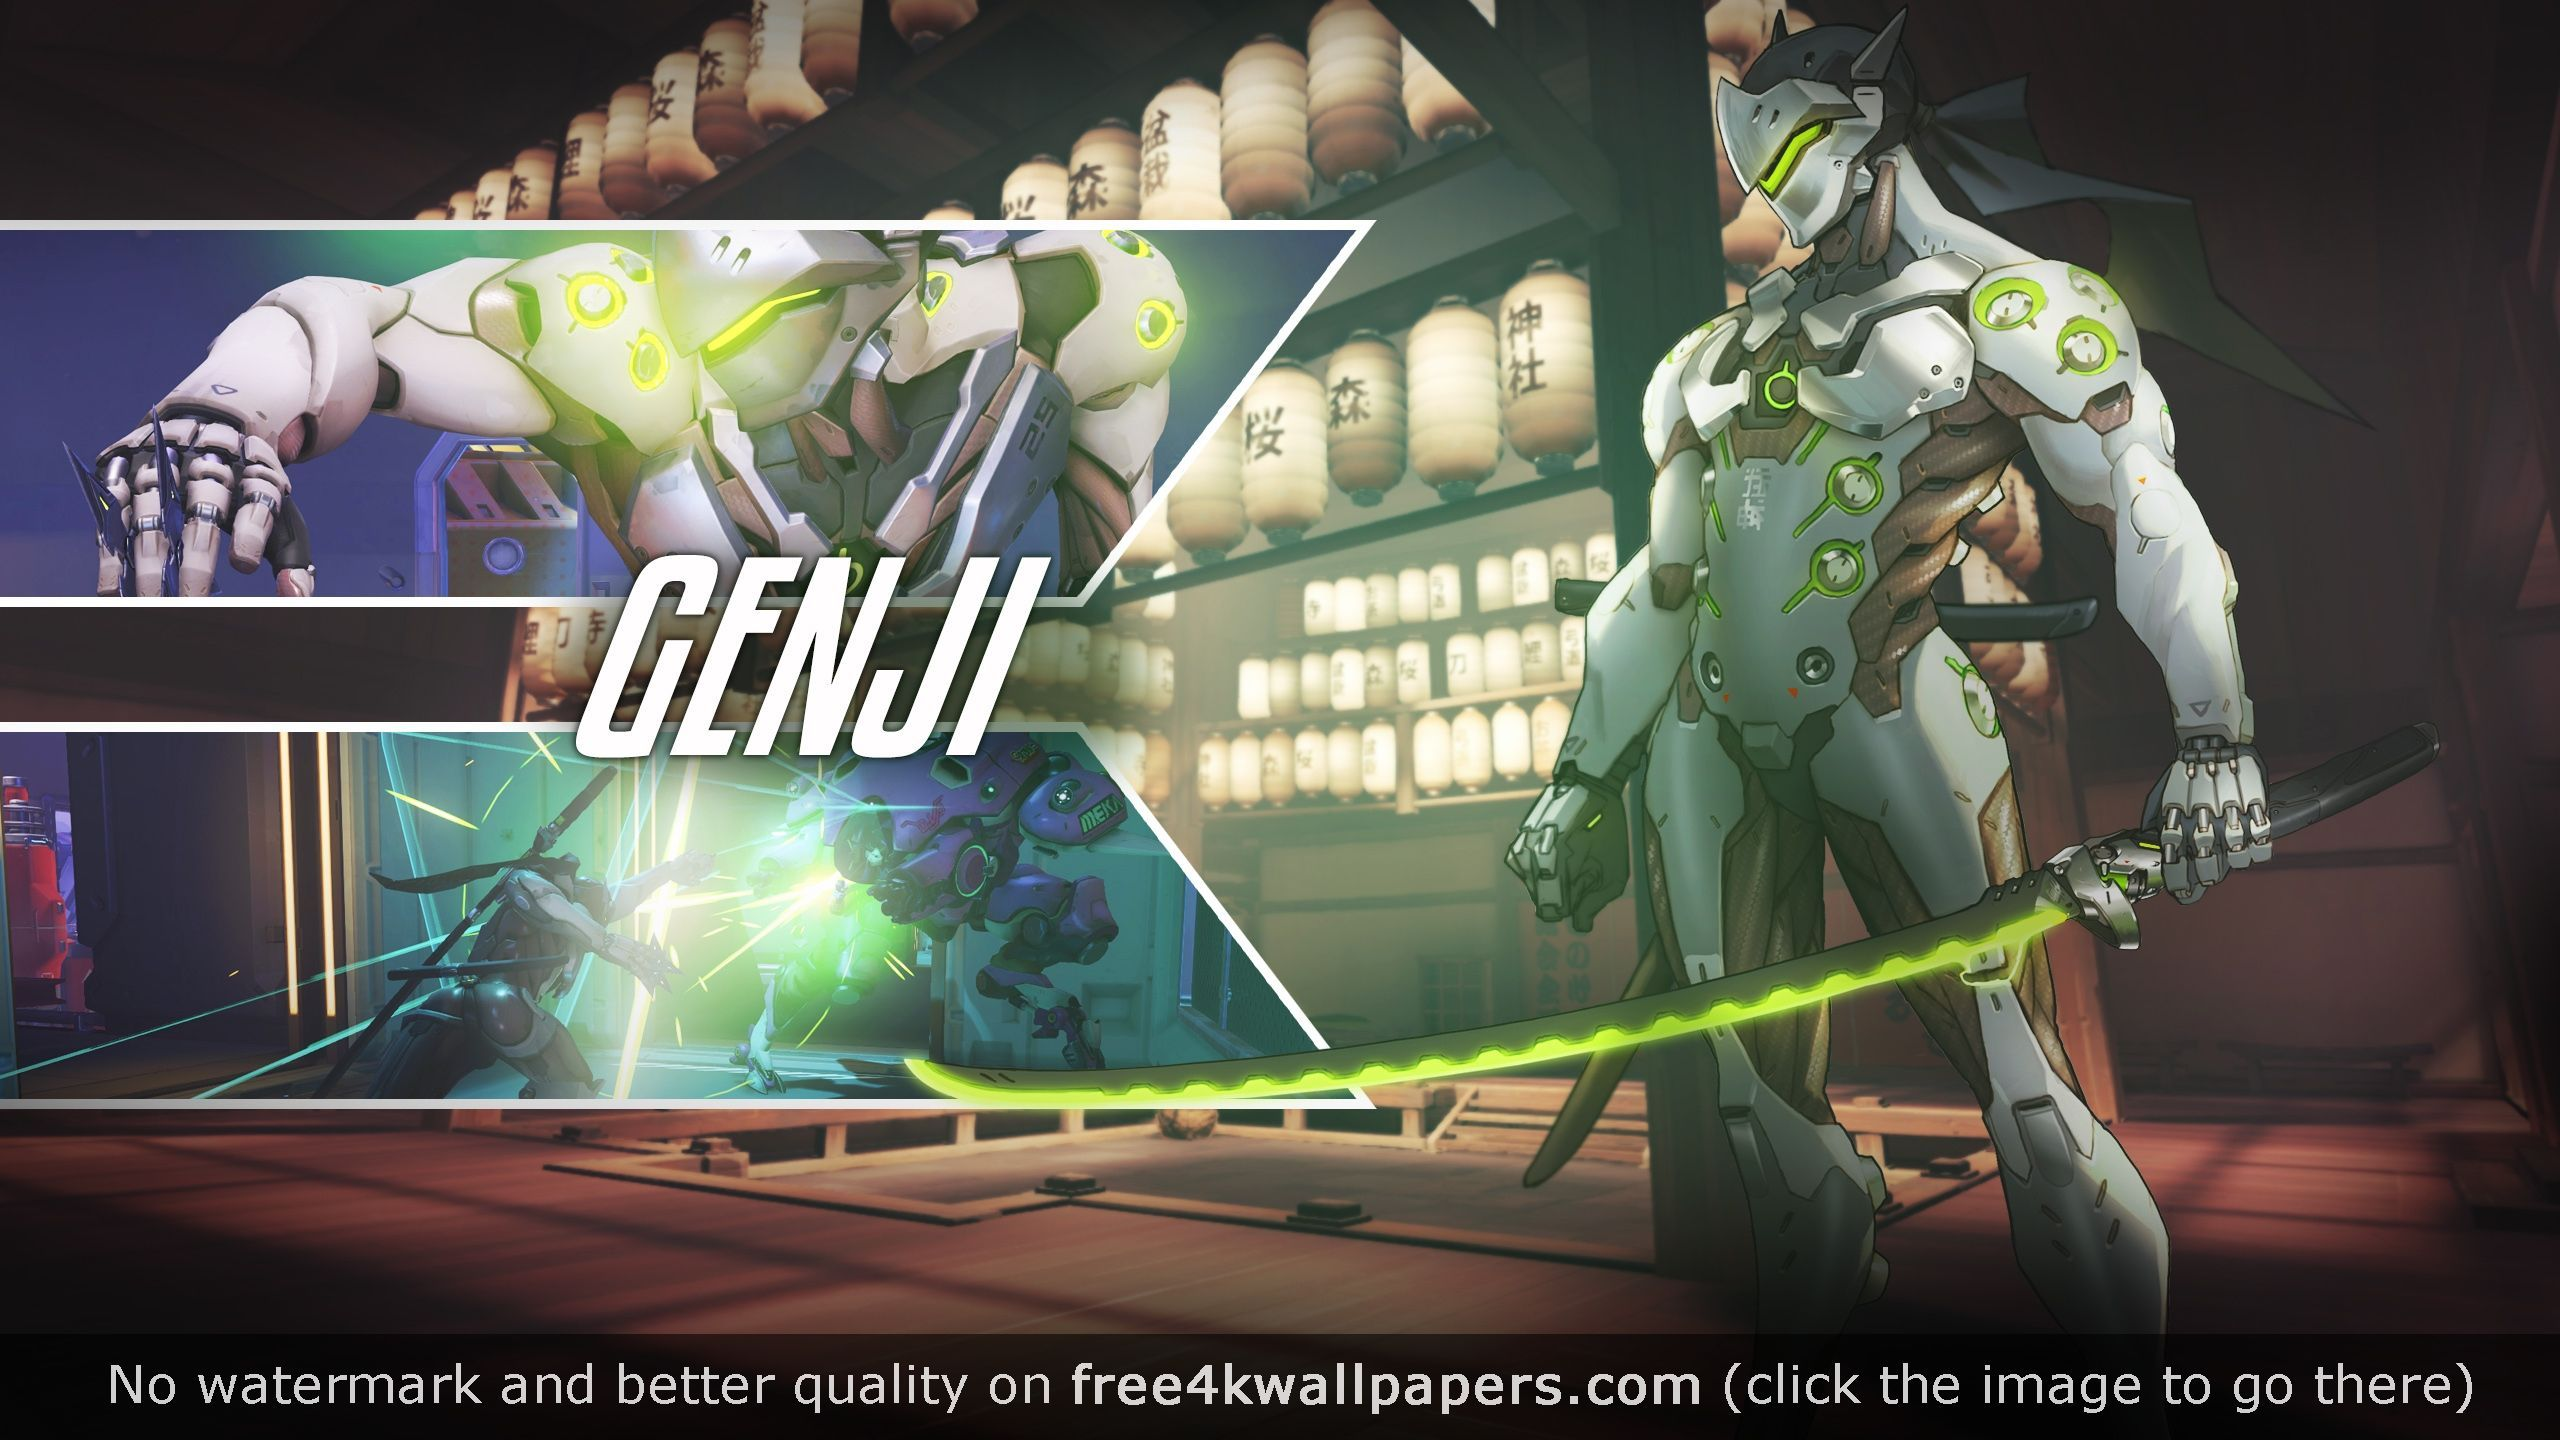 Genji Overwatch 4k Or Hd Wallpaper For Your Pc Mac Or Mobile Device